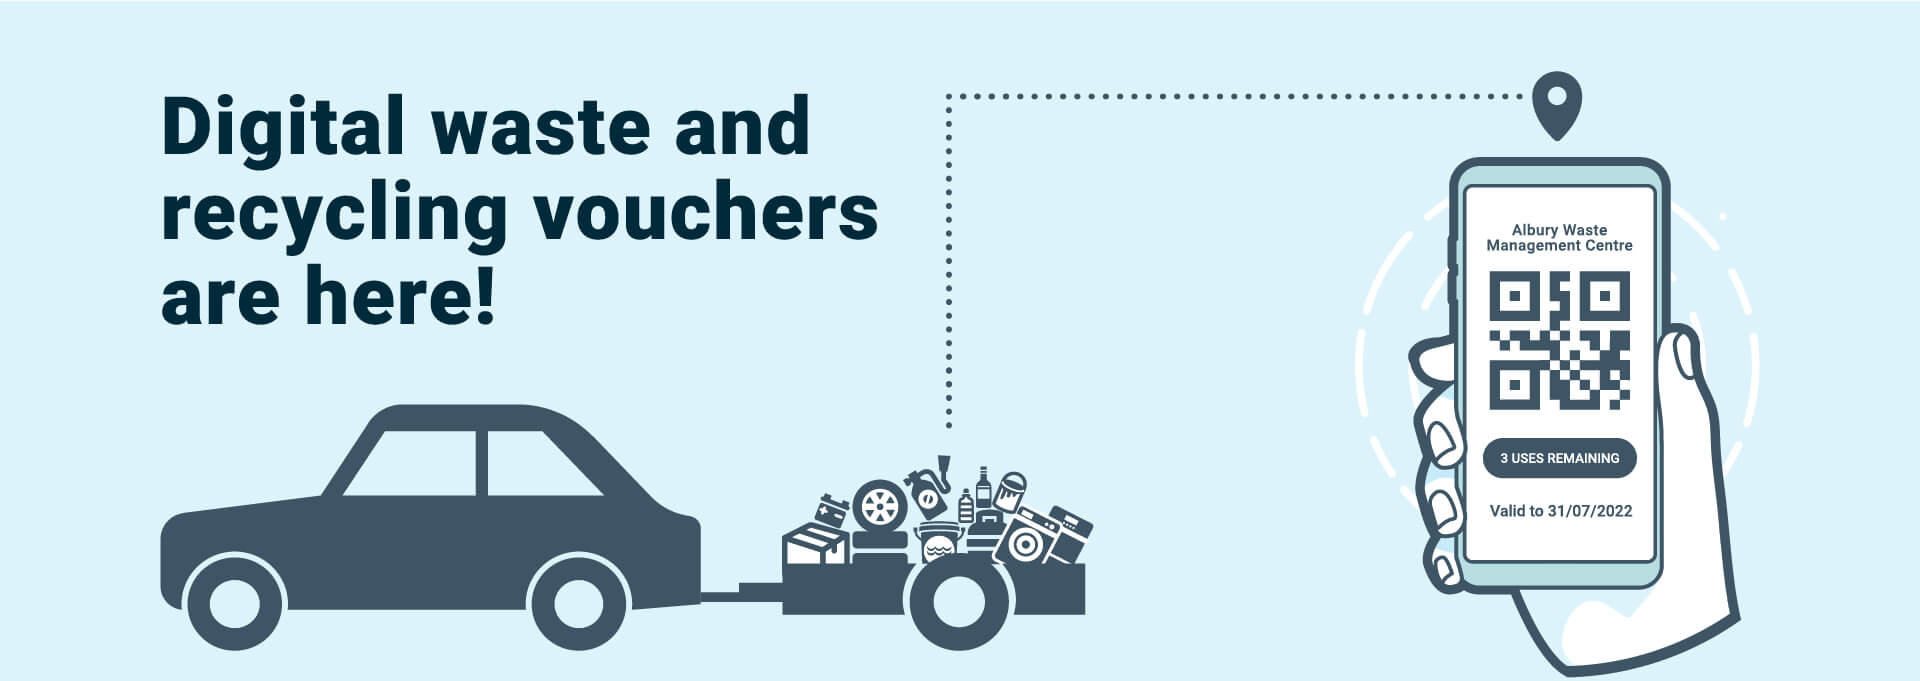 Digital Waste and Recycling Vouchers